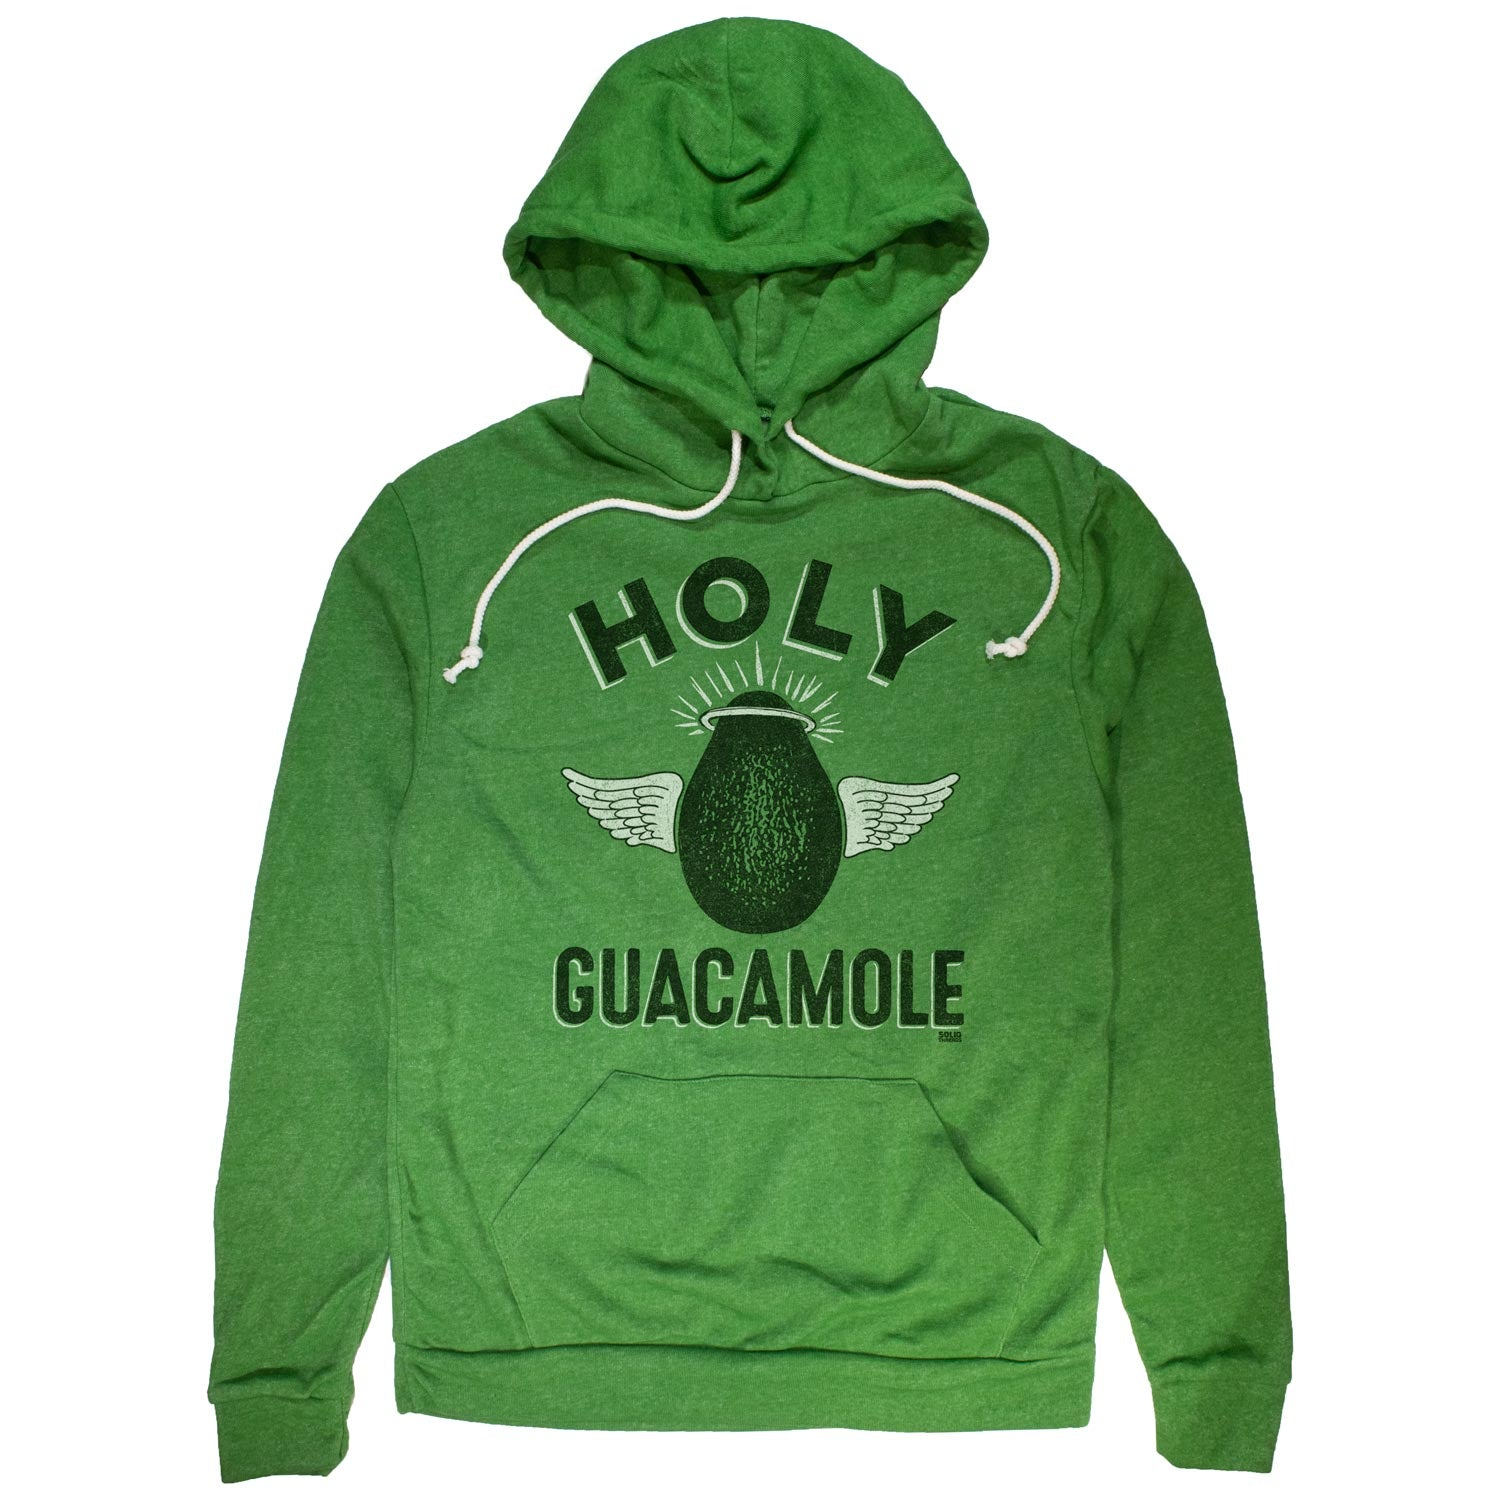 Holy Guacamole Vintage Pullover Hoodie | Funny Avocado Graphic | Solid Threads